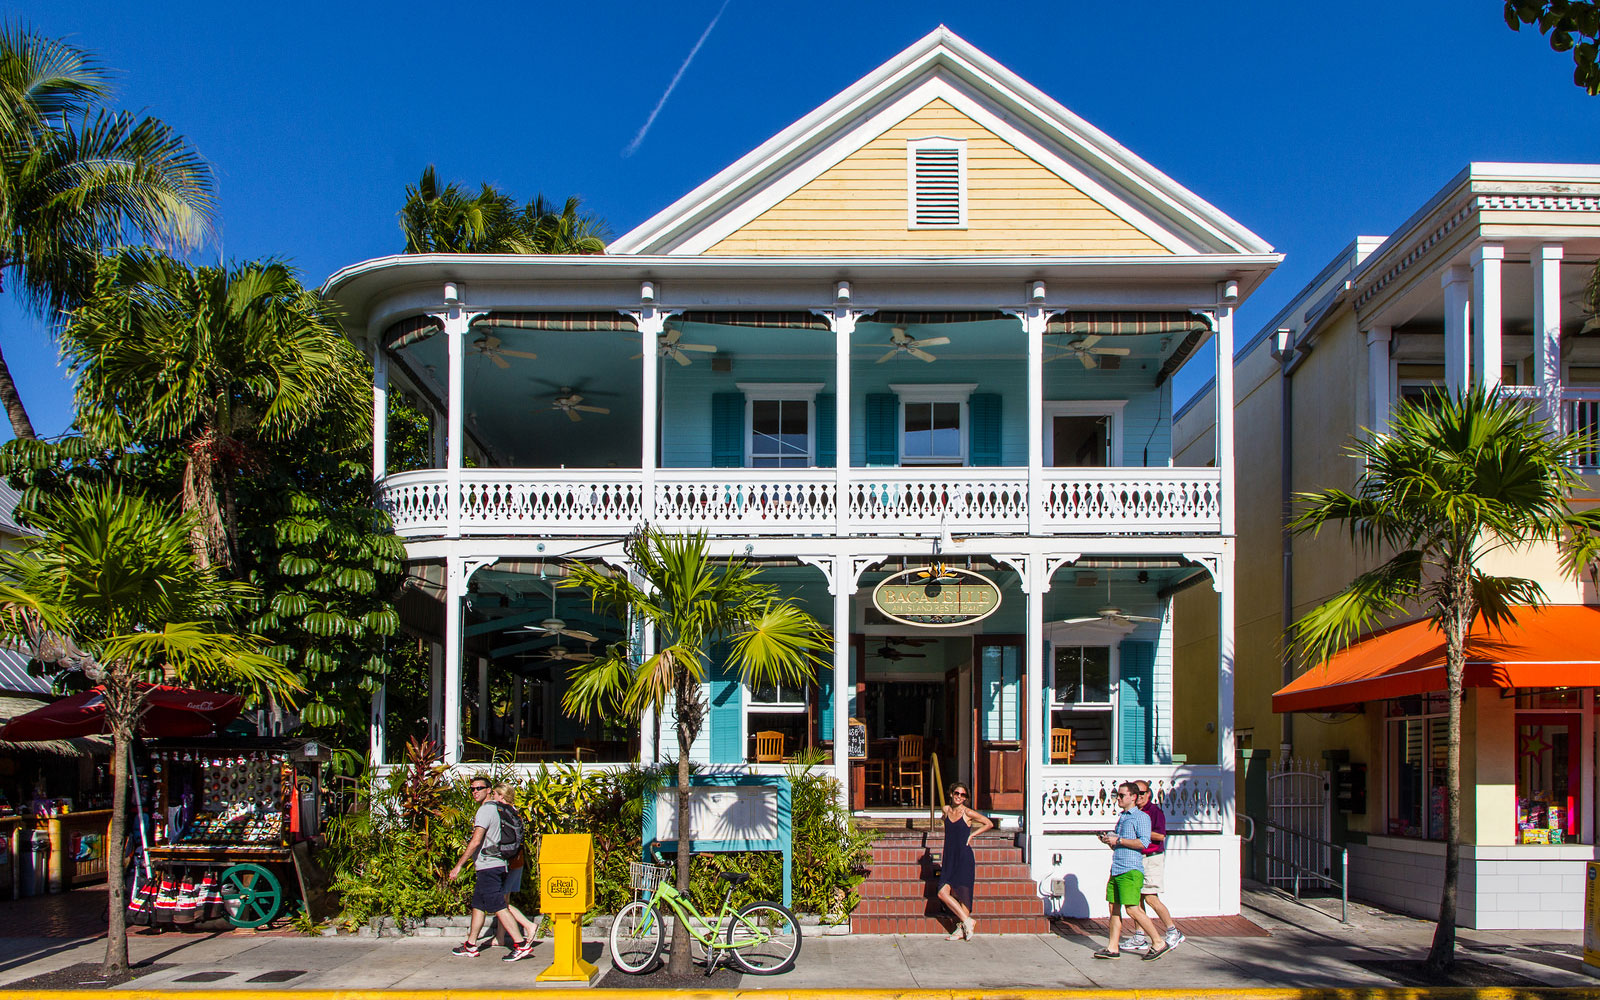 World's Friendliest Cities: Key West, Florida